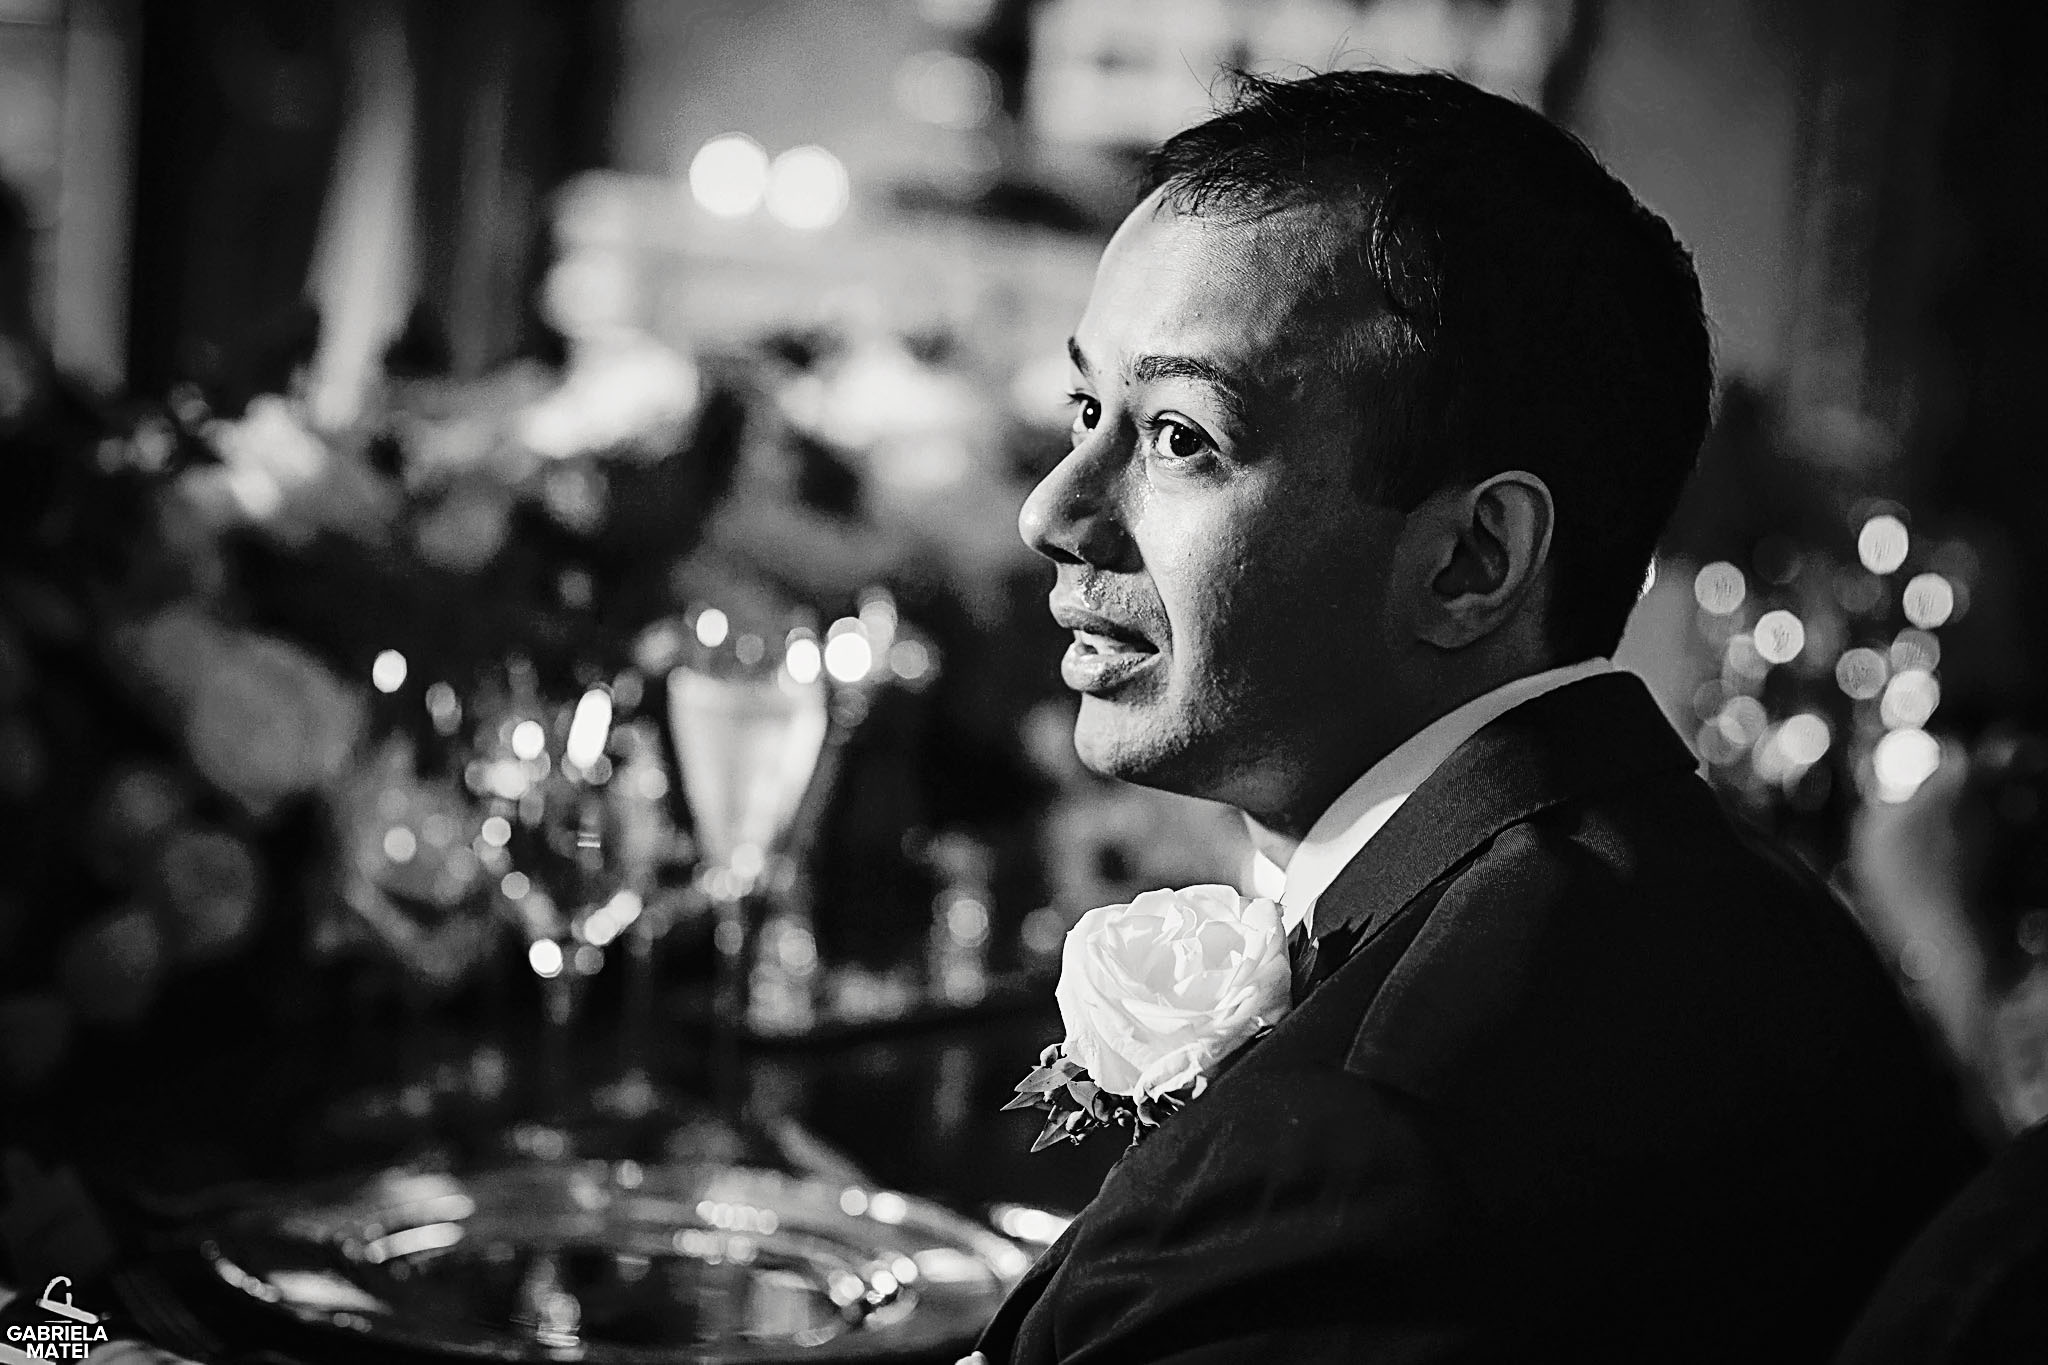 Groom bursting into tears during wedding speeches at The Ritz hotel in London